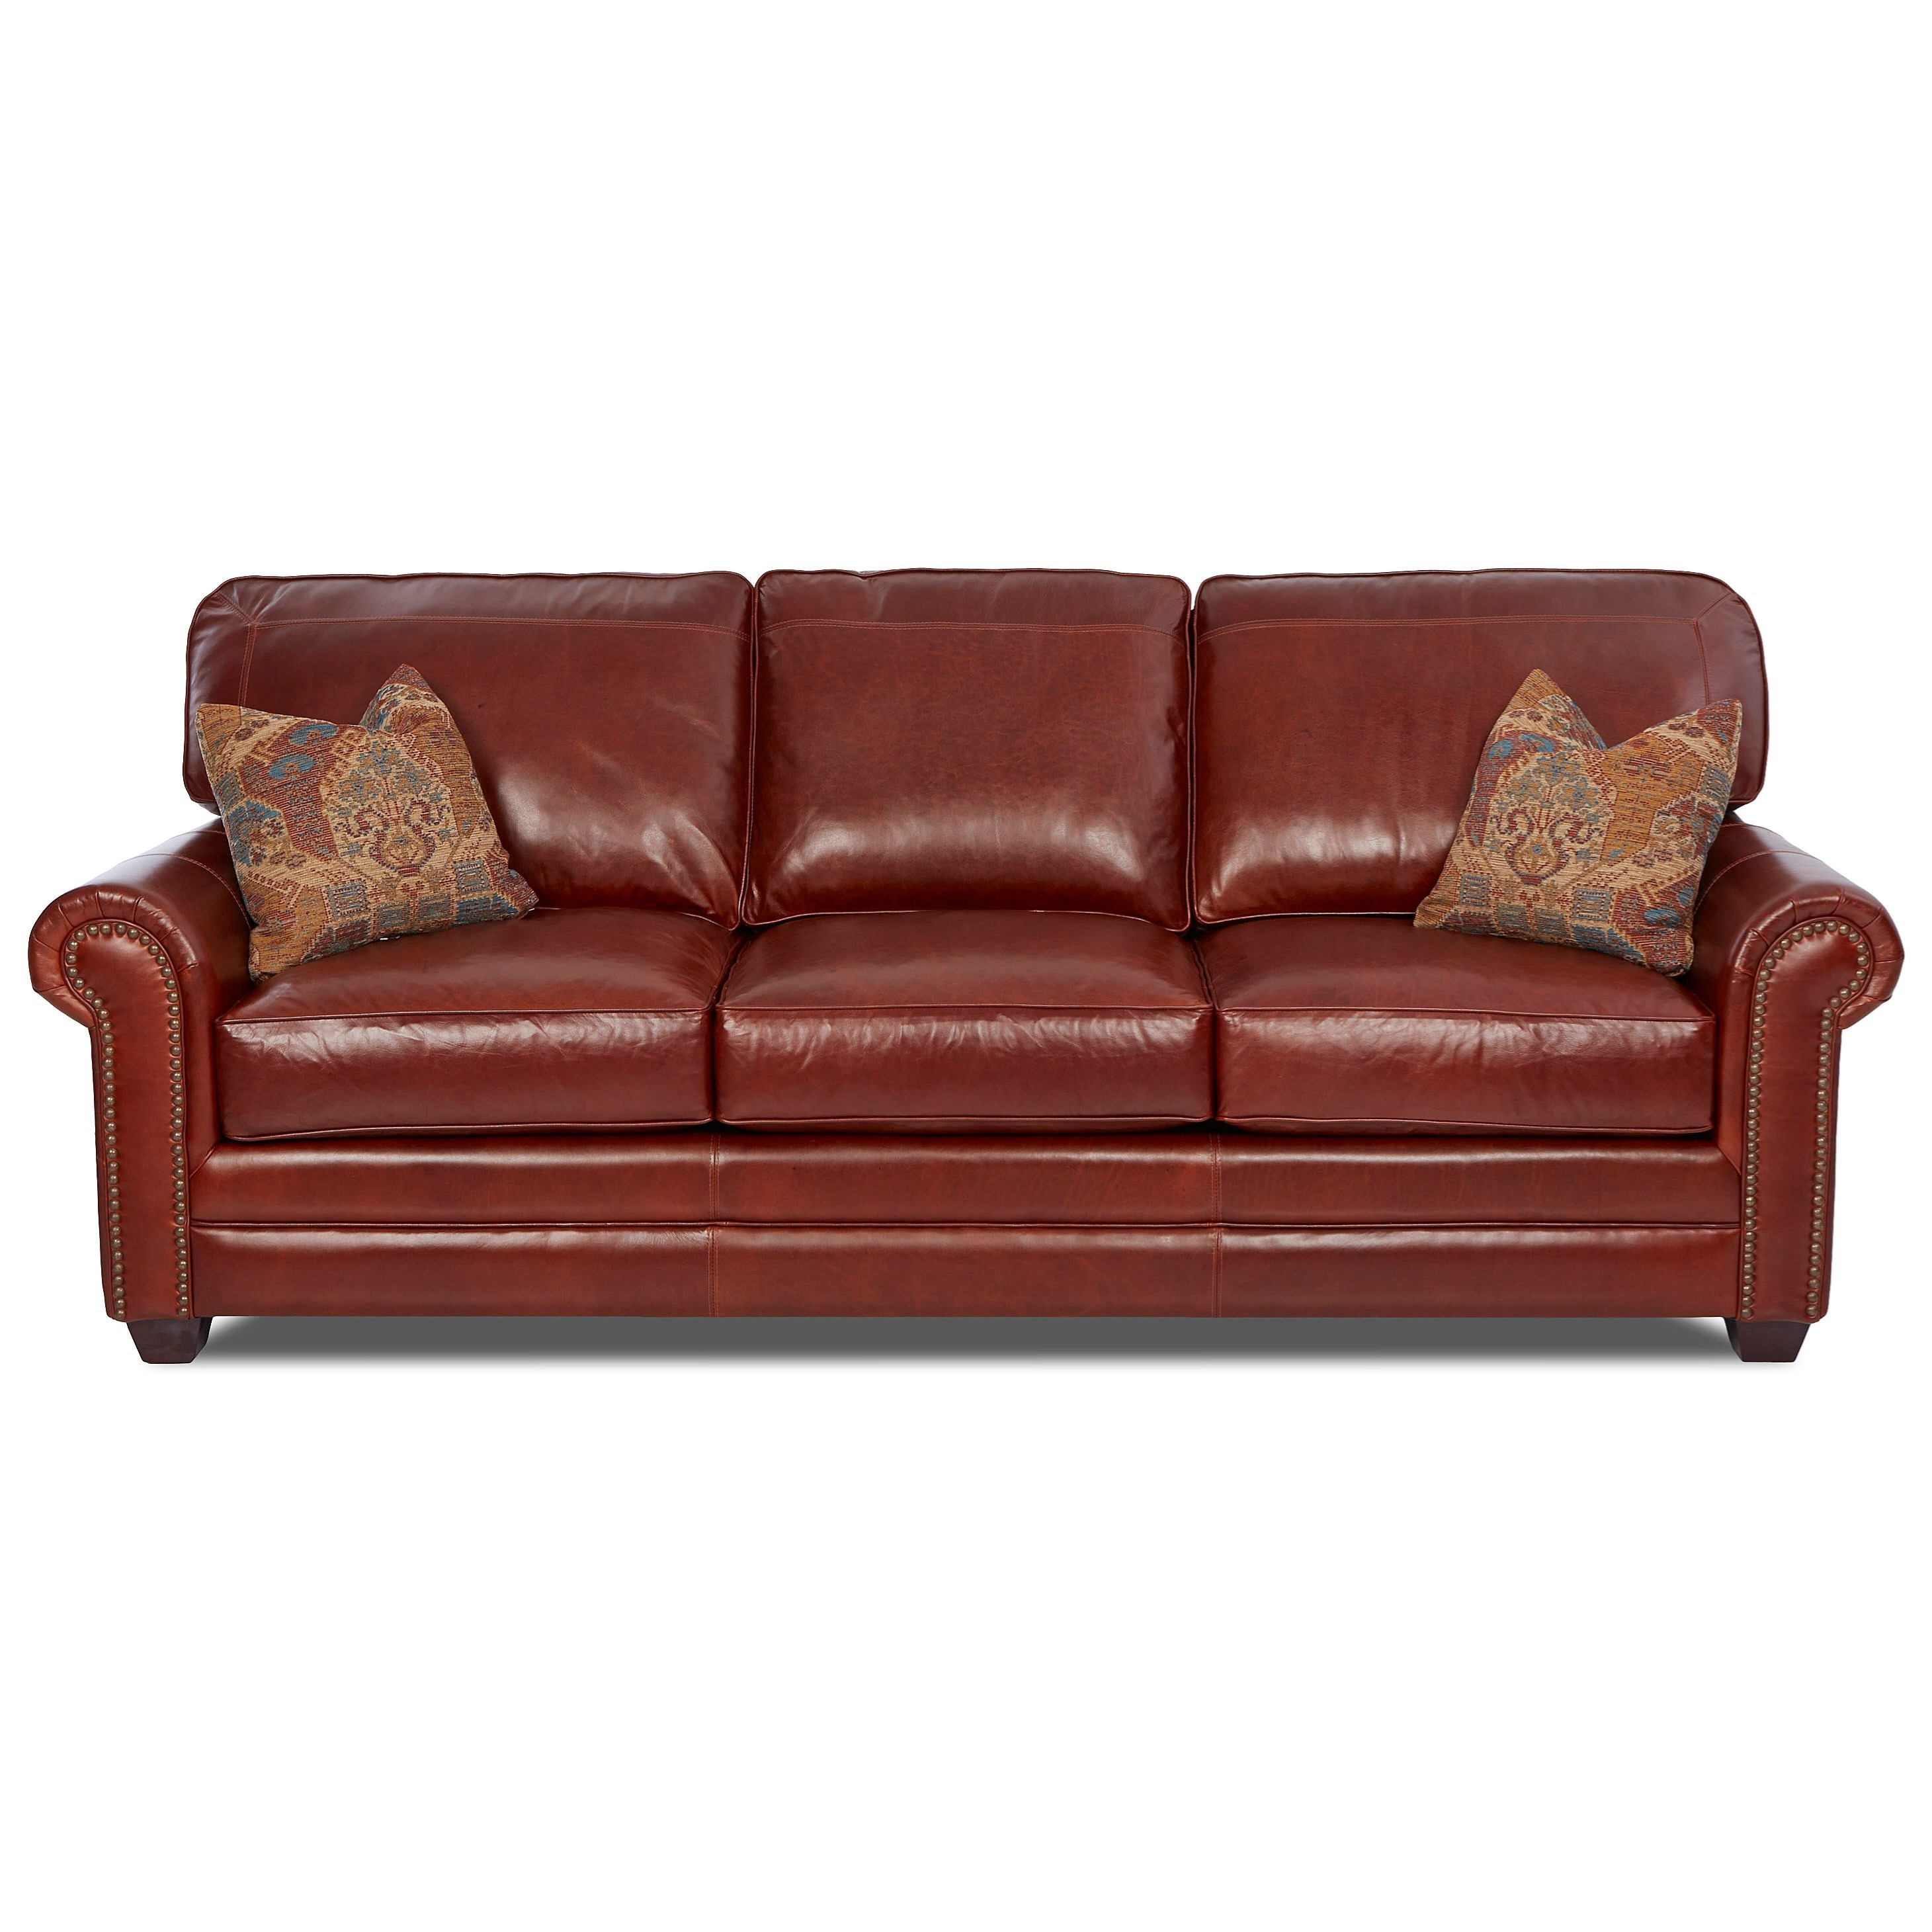 Transitional Leather Sofa  with Nailheads & Pillows